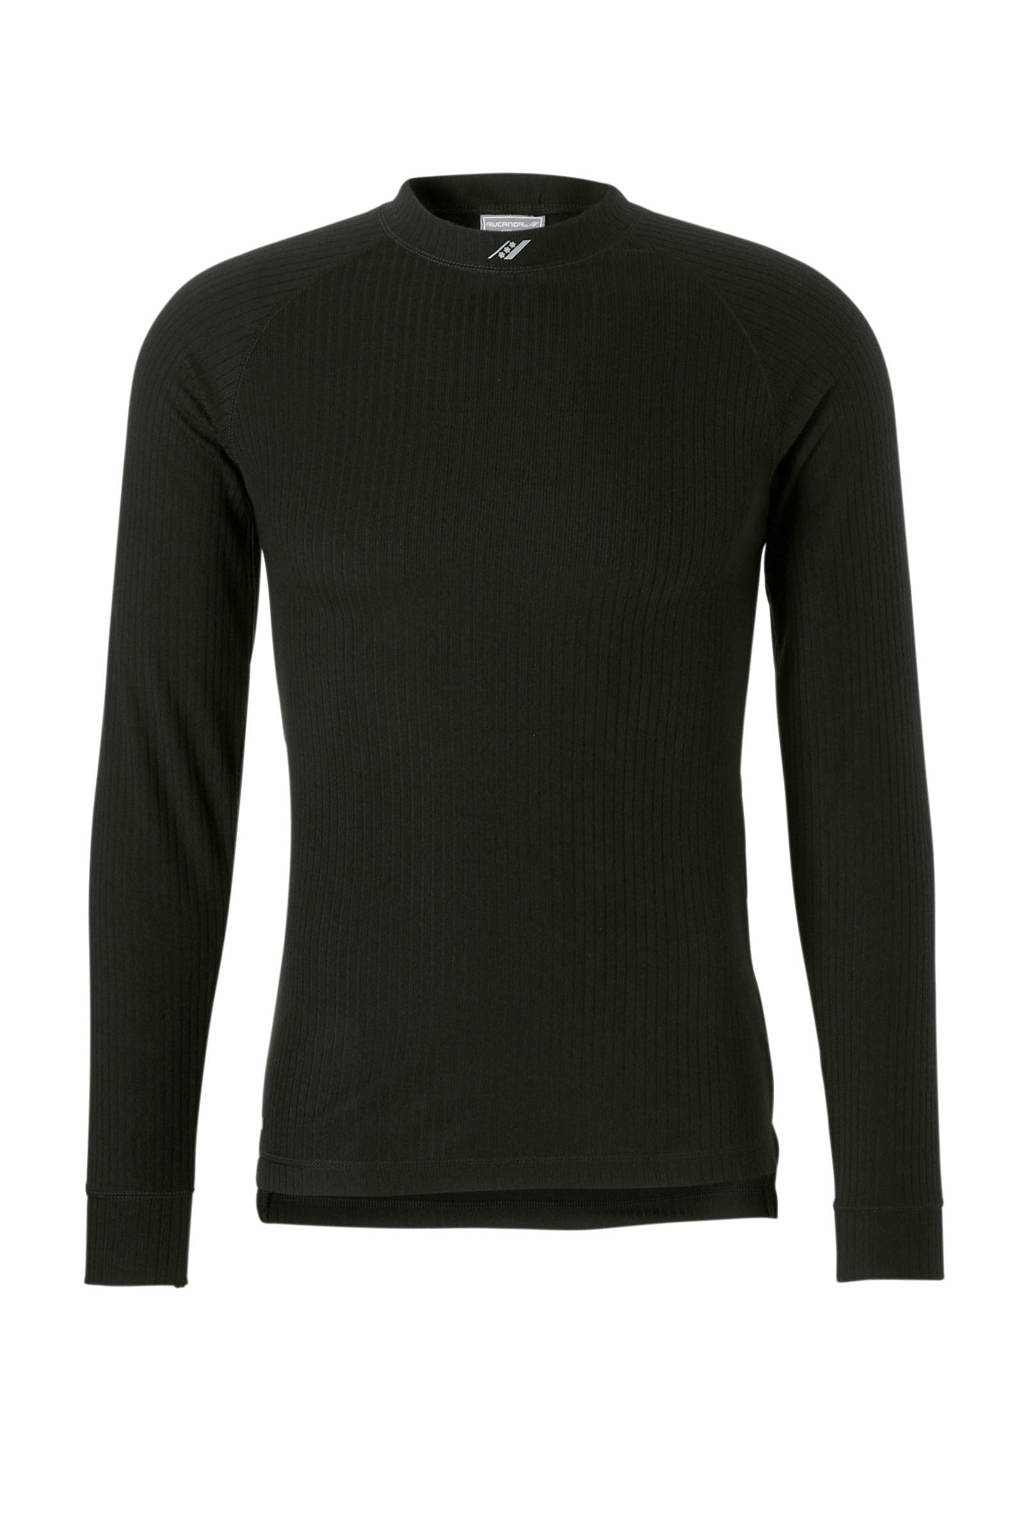 Rucanor thermo shirt  zwart, Zwart